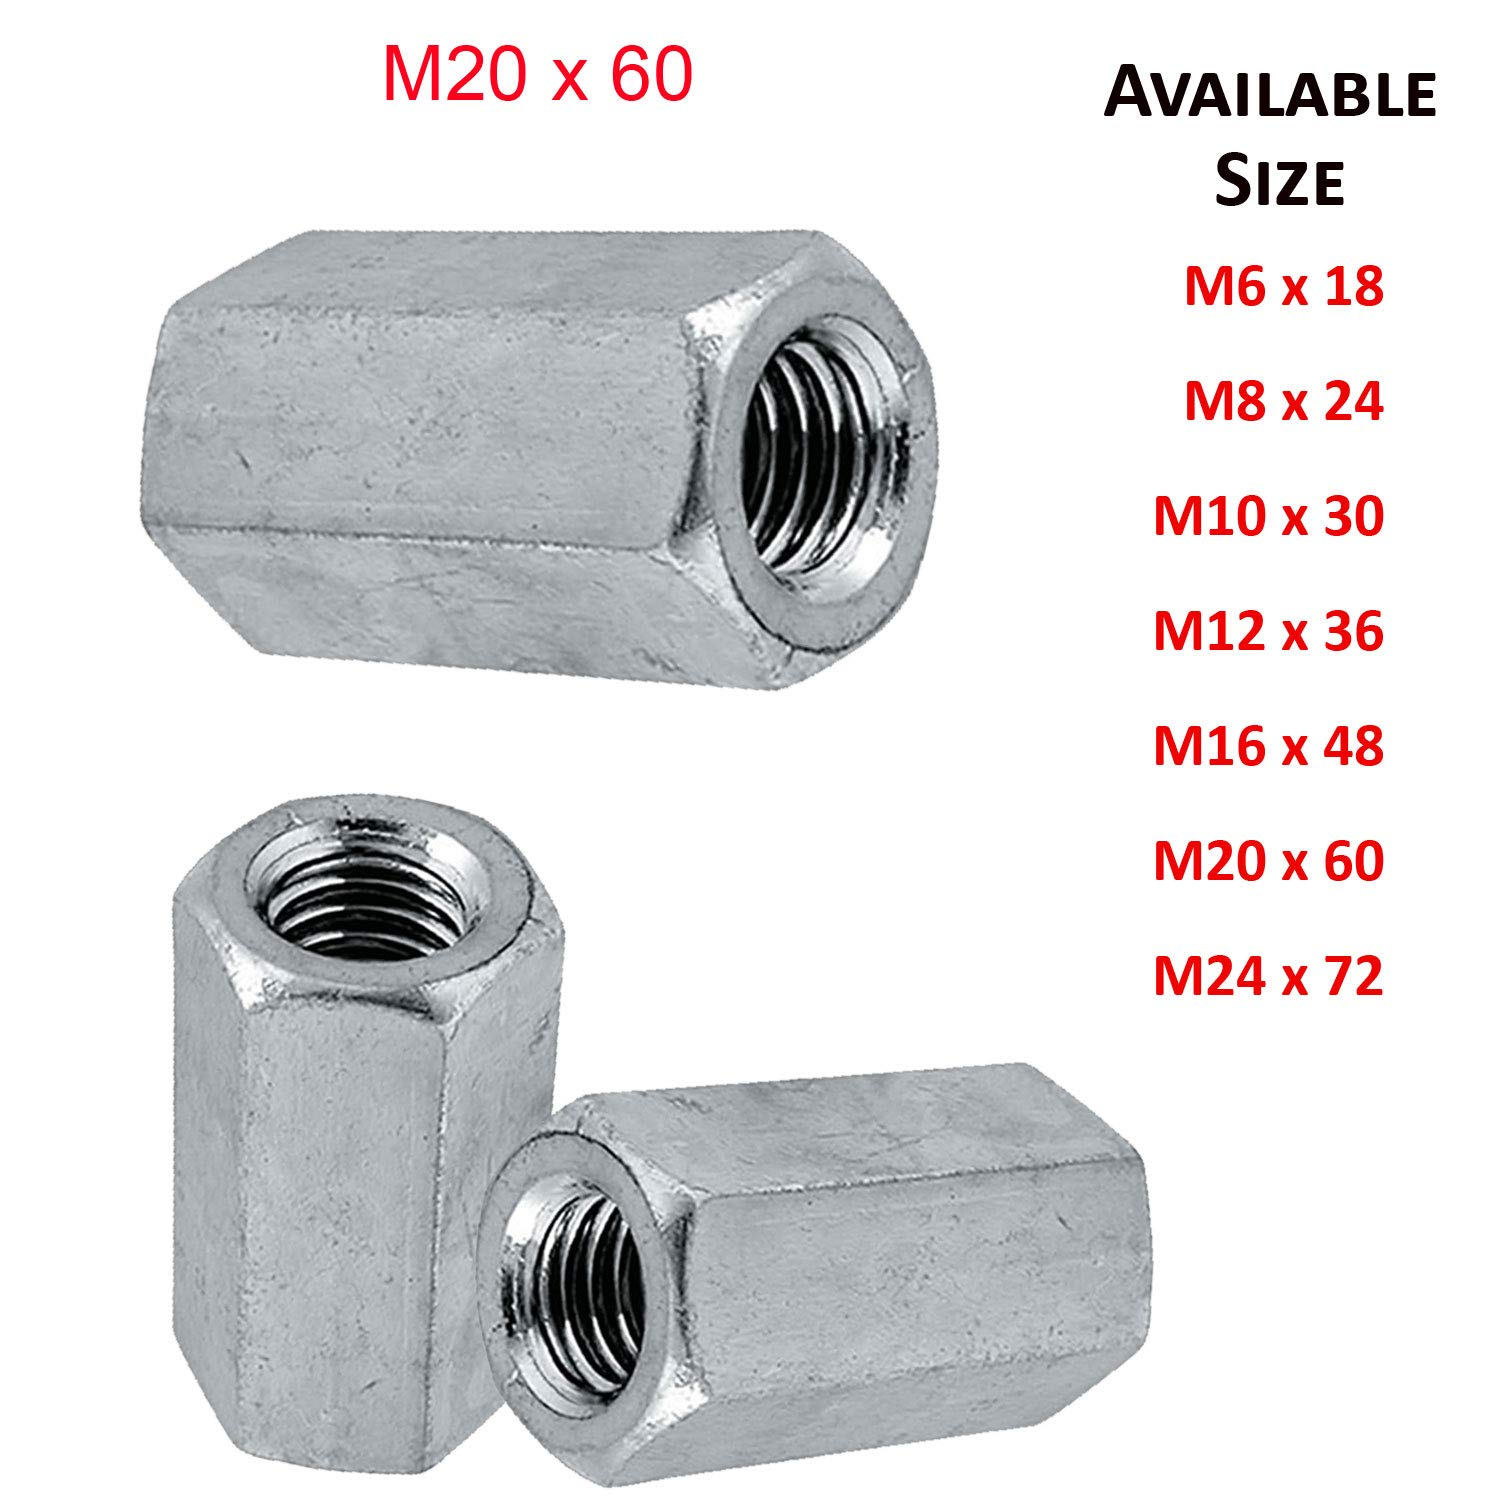 (10mm) M10 exagon Studding Connector Long Nuts Bright Zinc Plated Grade 4 DIN 6334 - Pack 3 SHUKAN